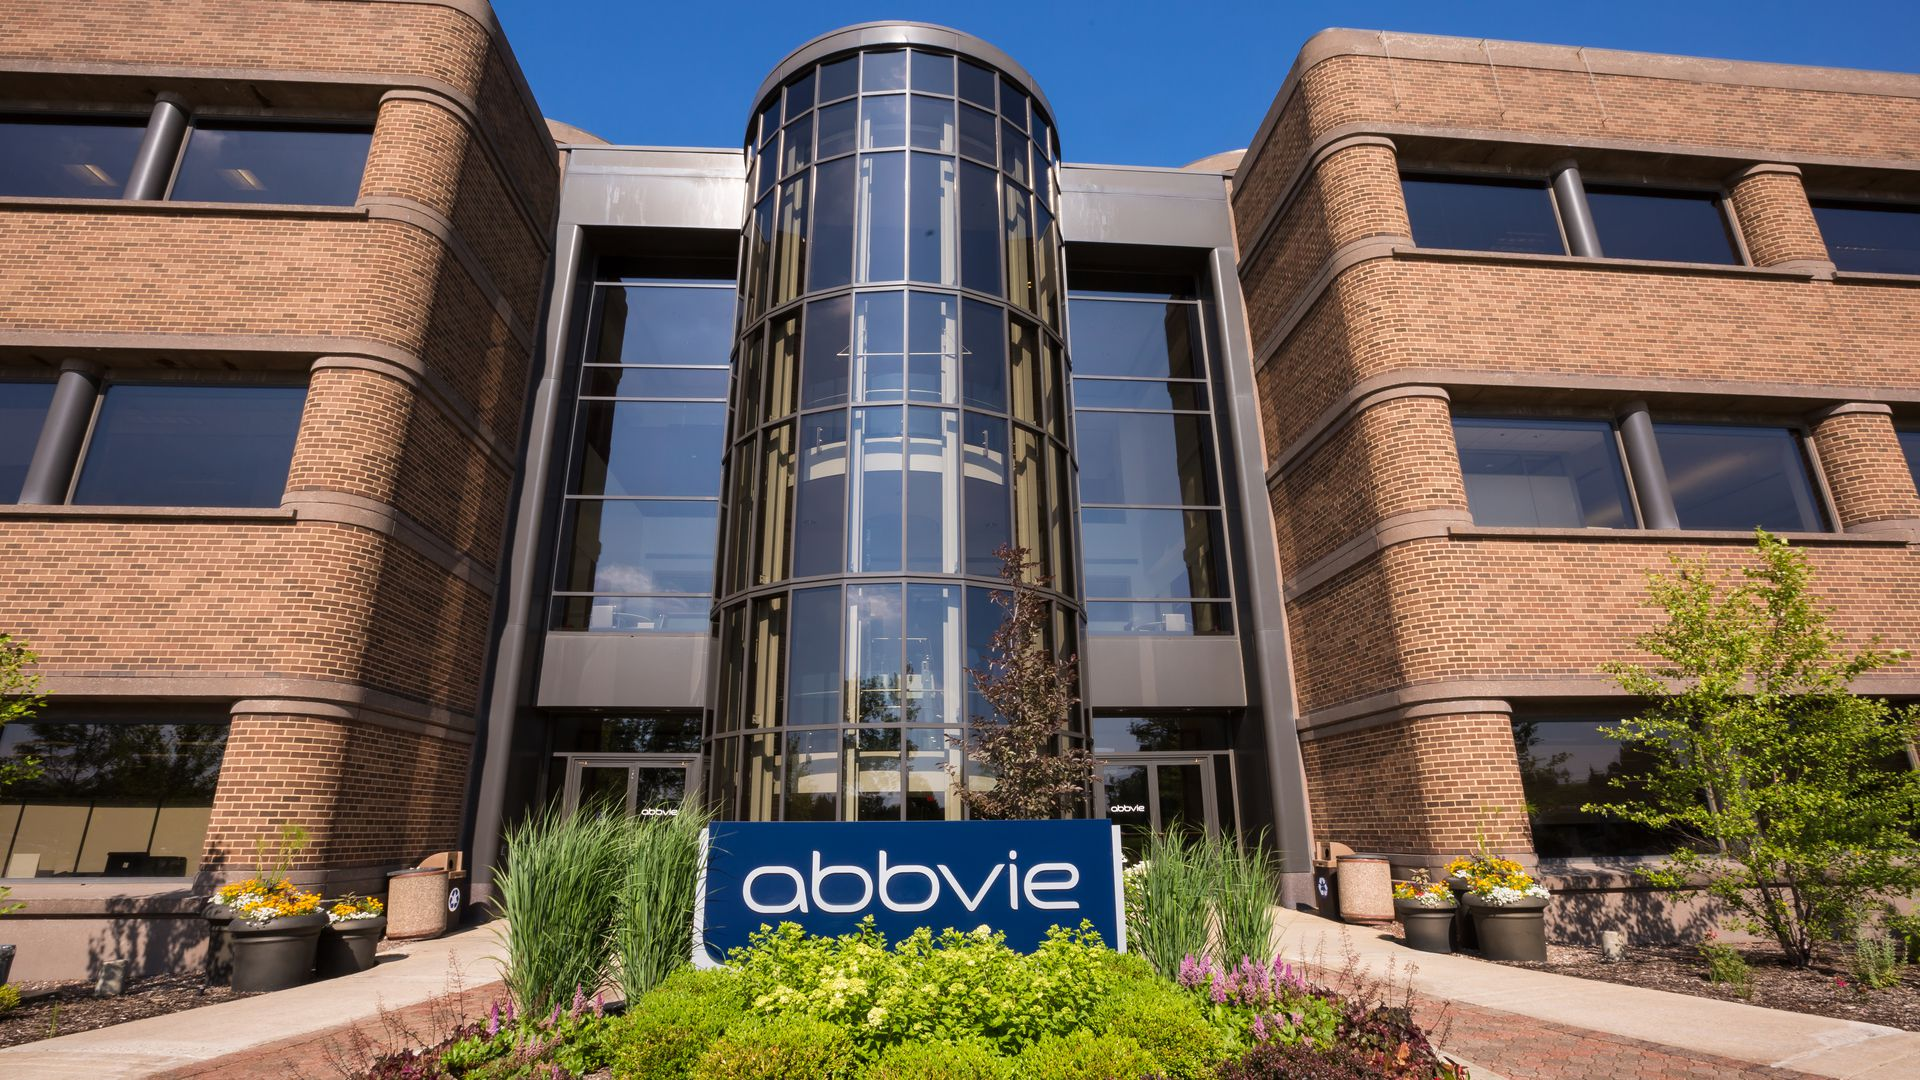 AbbVie headquarters building in Illinois.